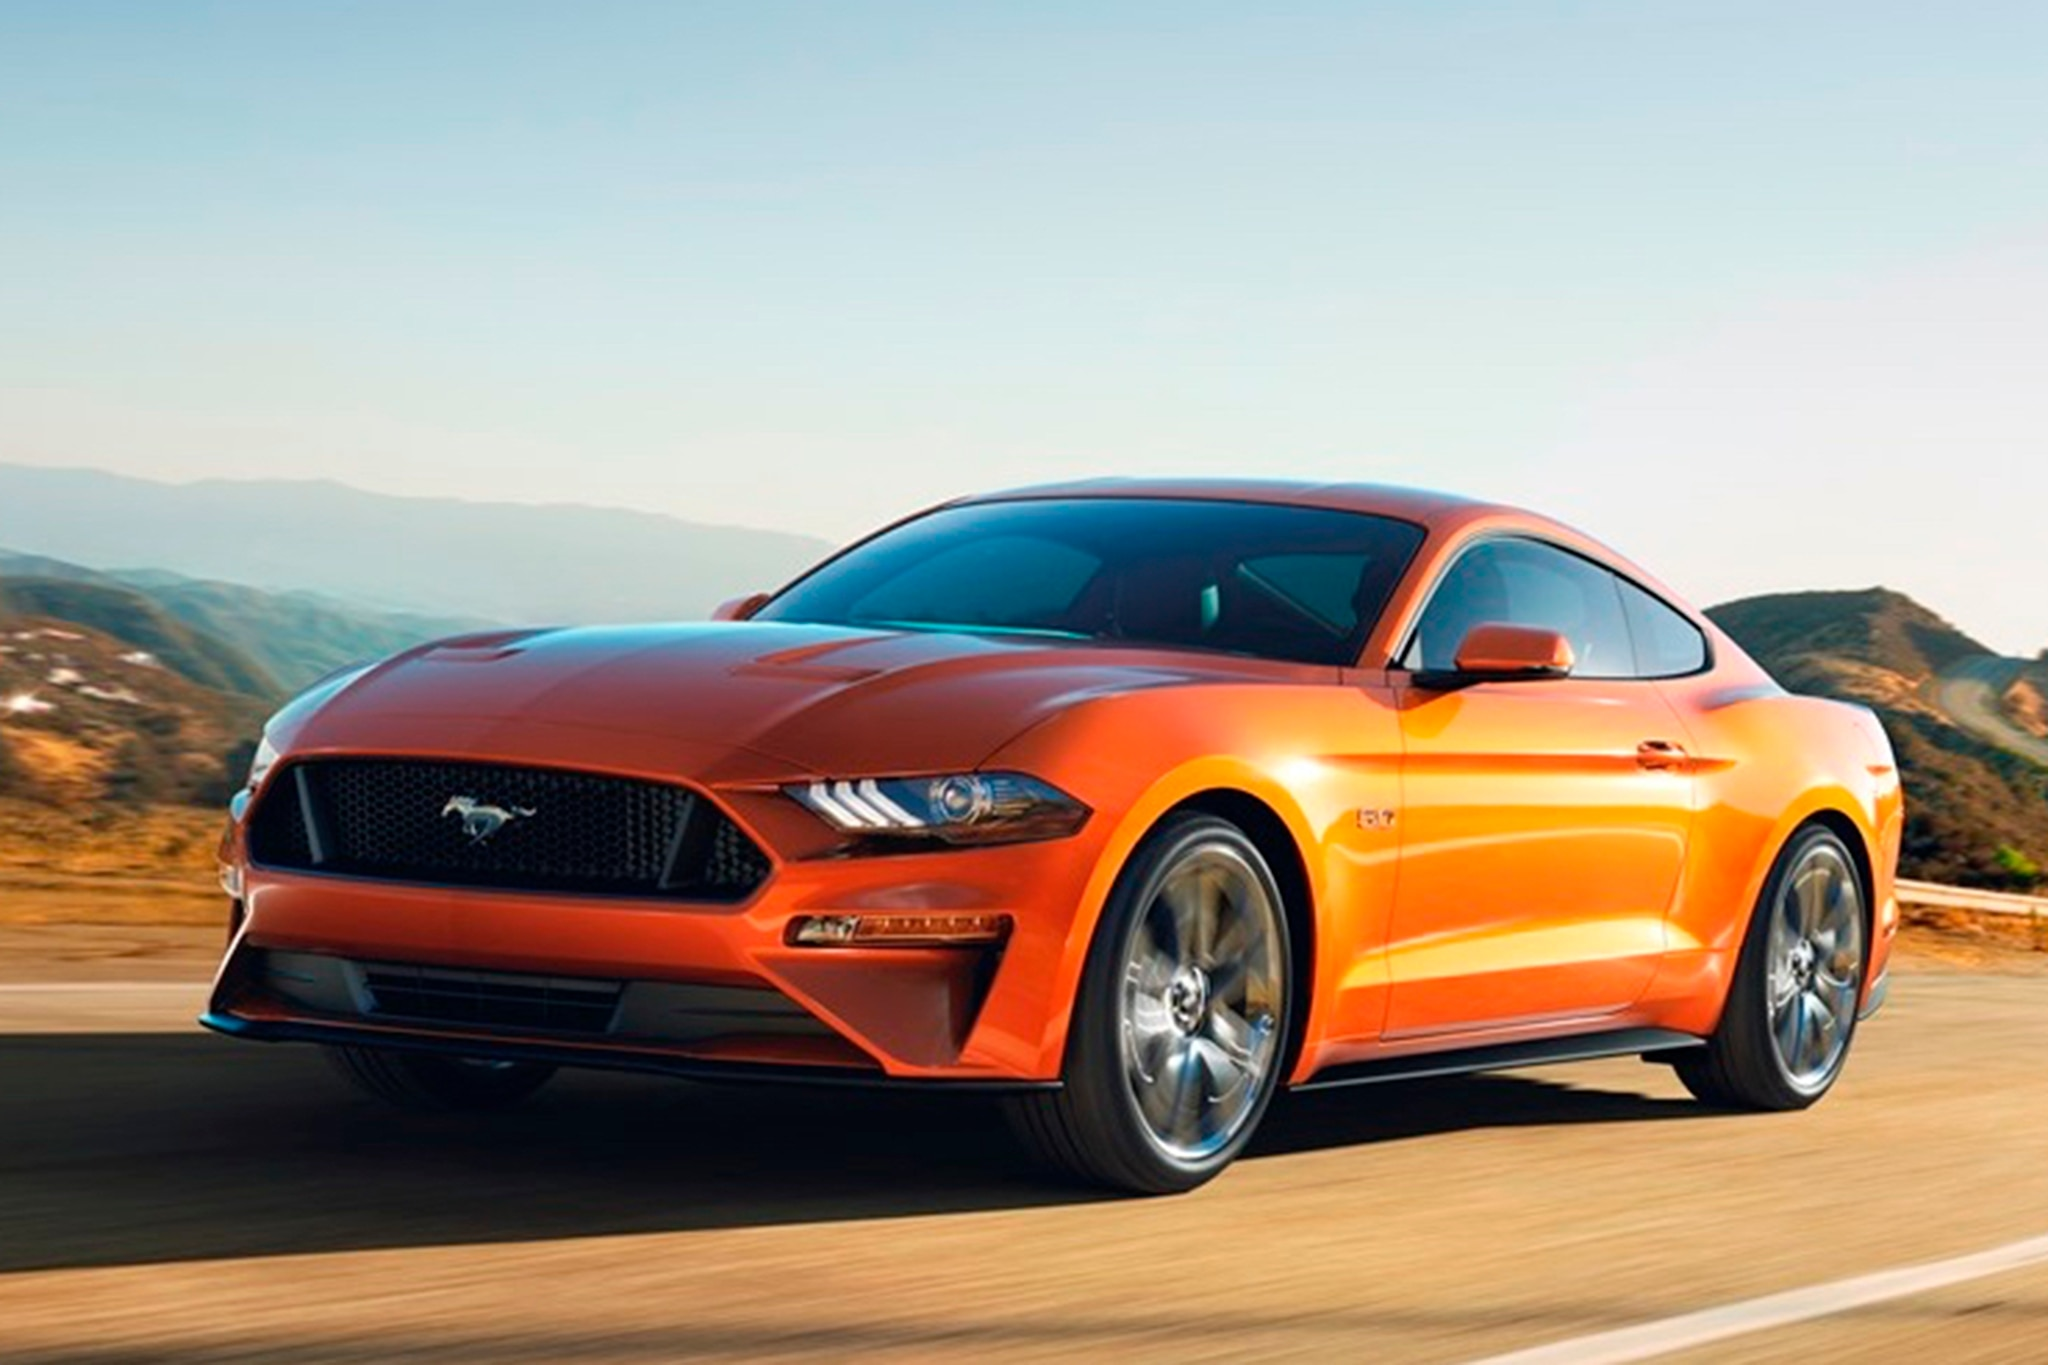 New Mustang Ford's fastest ever, can beat Porsche 911 off the line